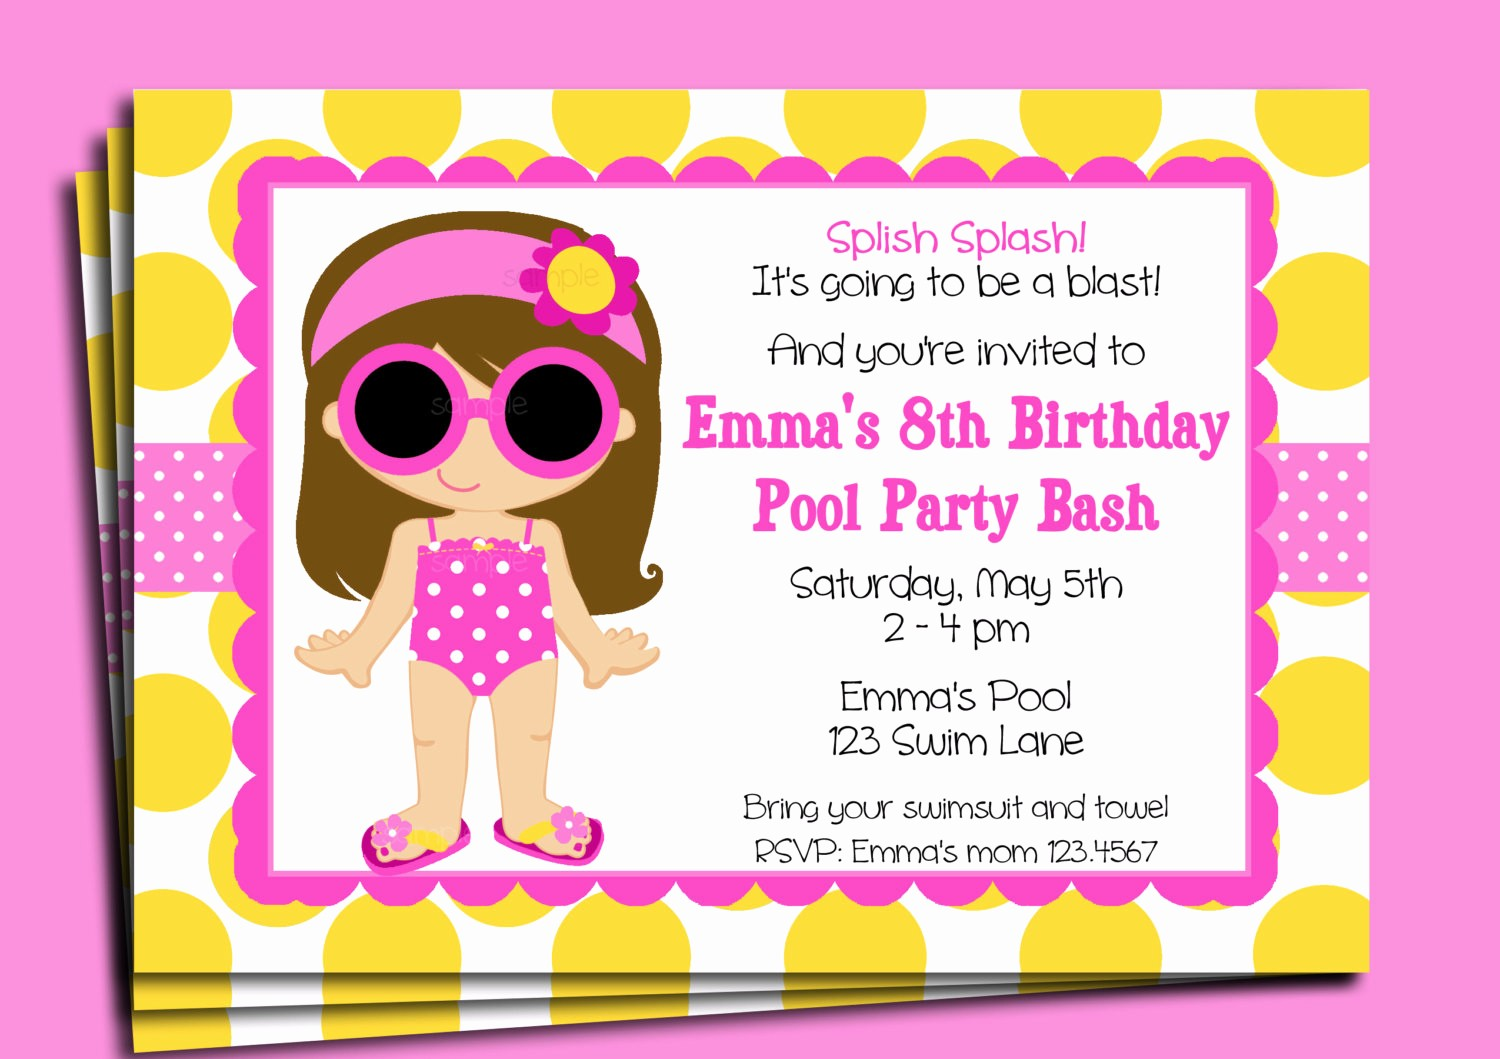 Kids Birthday Party Invites Templates Inspirational Invitation Templates Kids Party